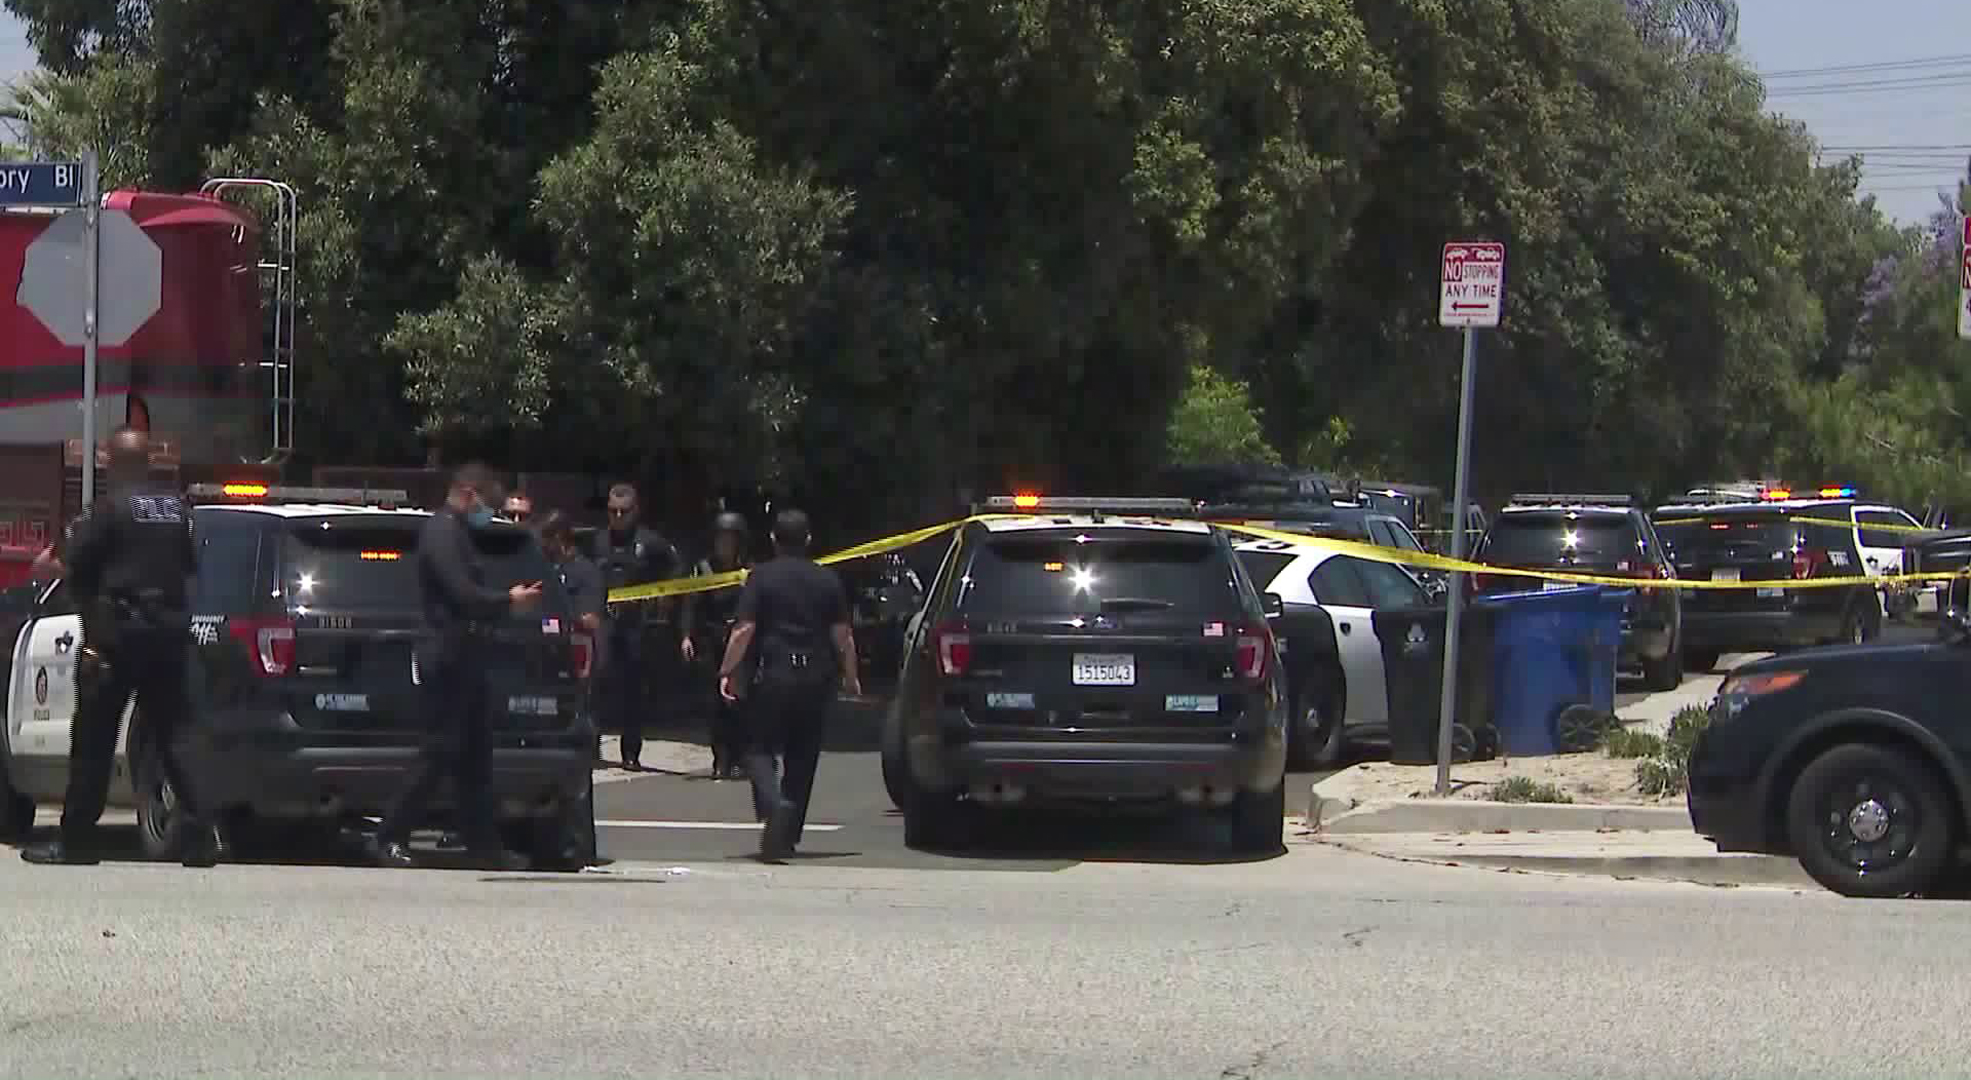 Police respond to a fatal officer-involved shooting in North Hollywood on May 27, 2020. (KTLA)